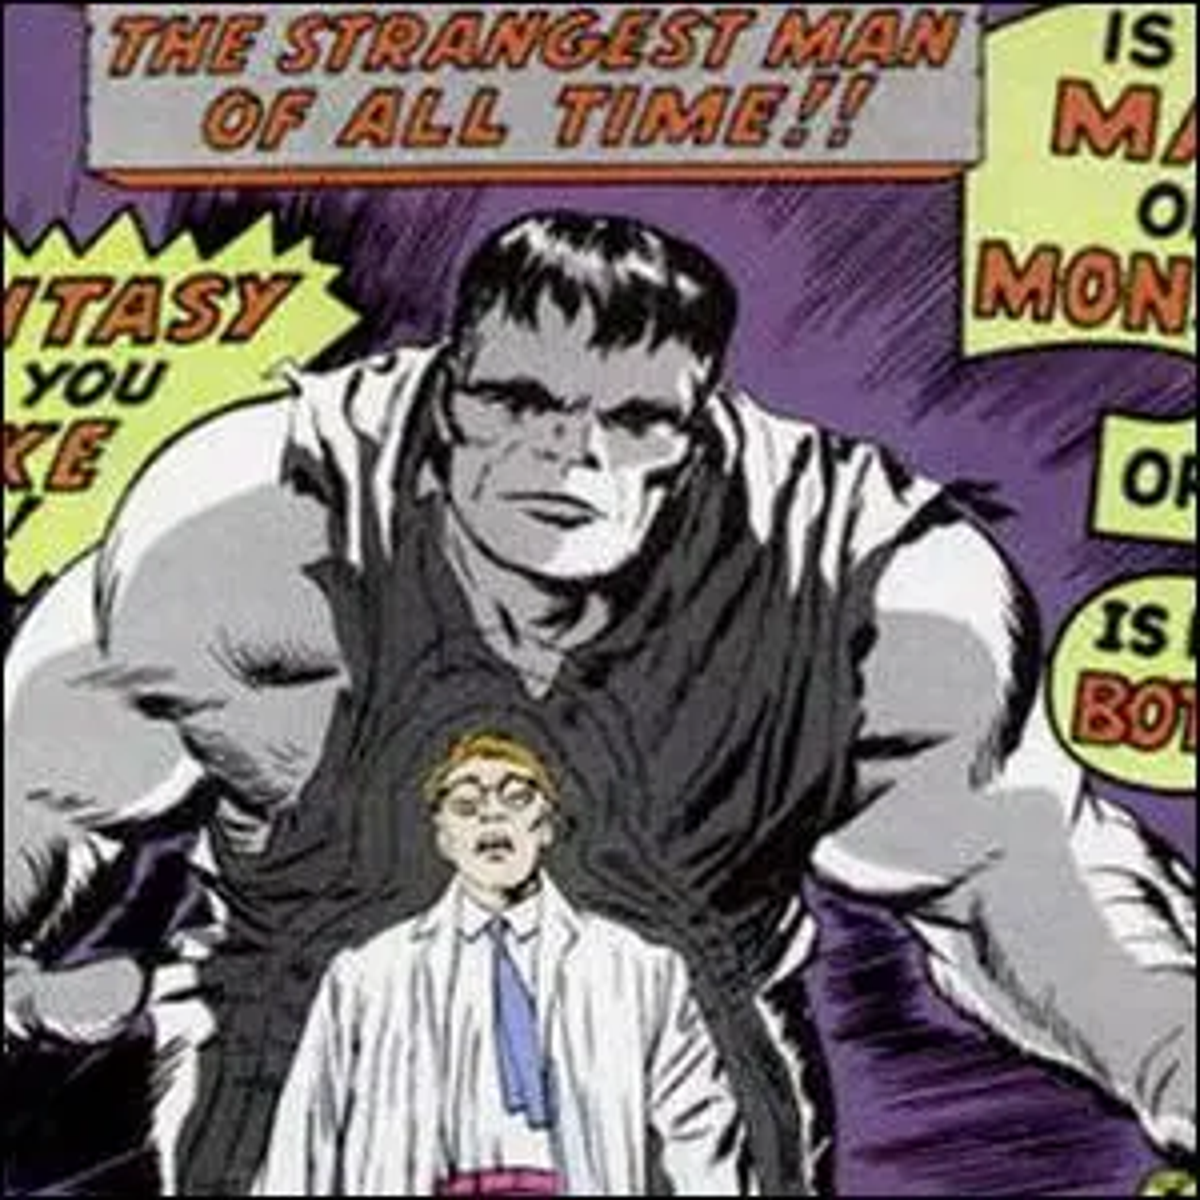 Artwork for the front cover of the first issue of the Incredible Hulk comic book.